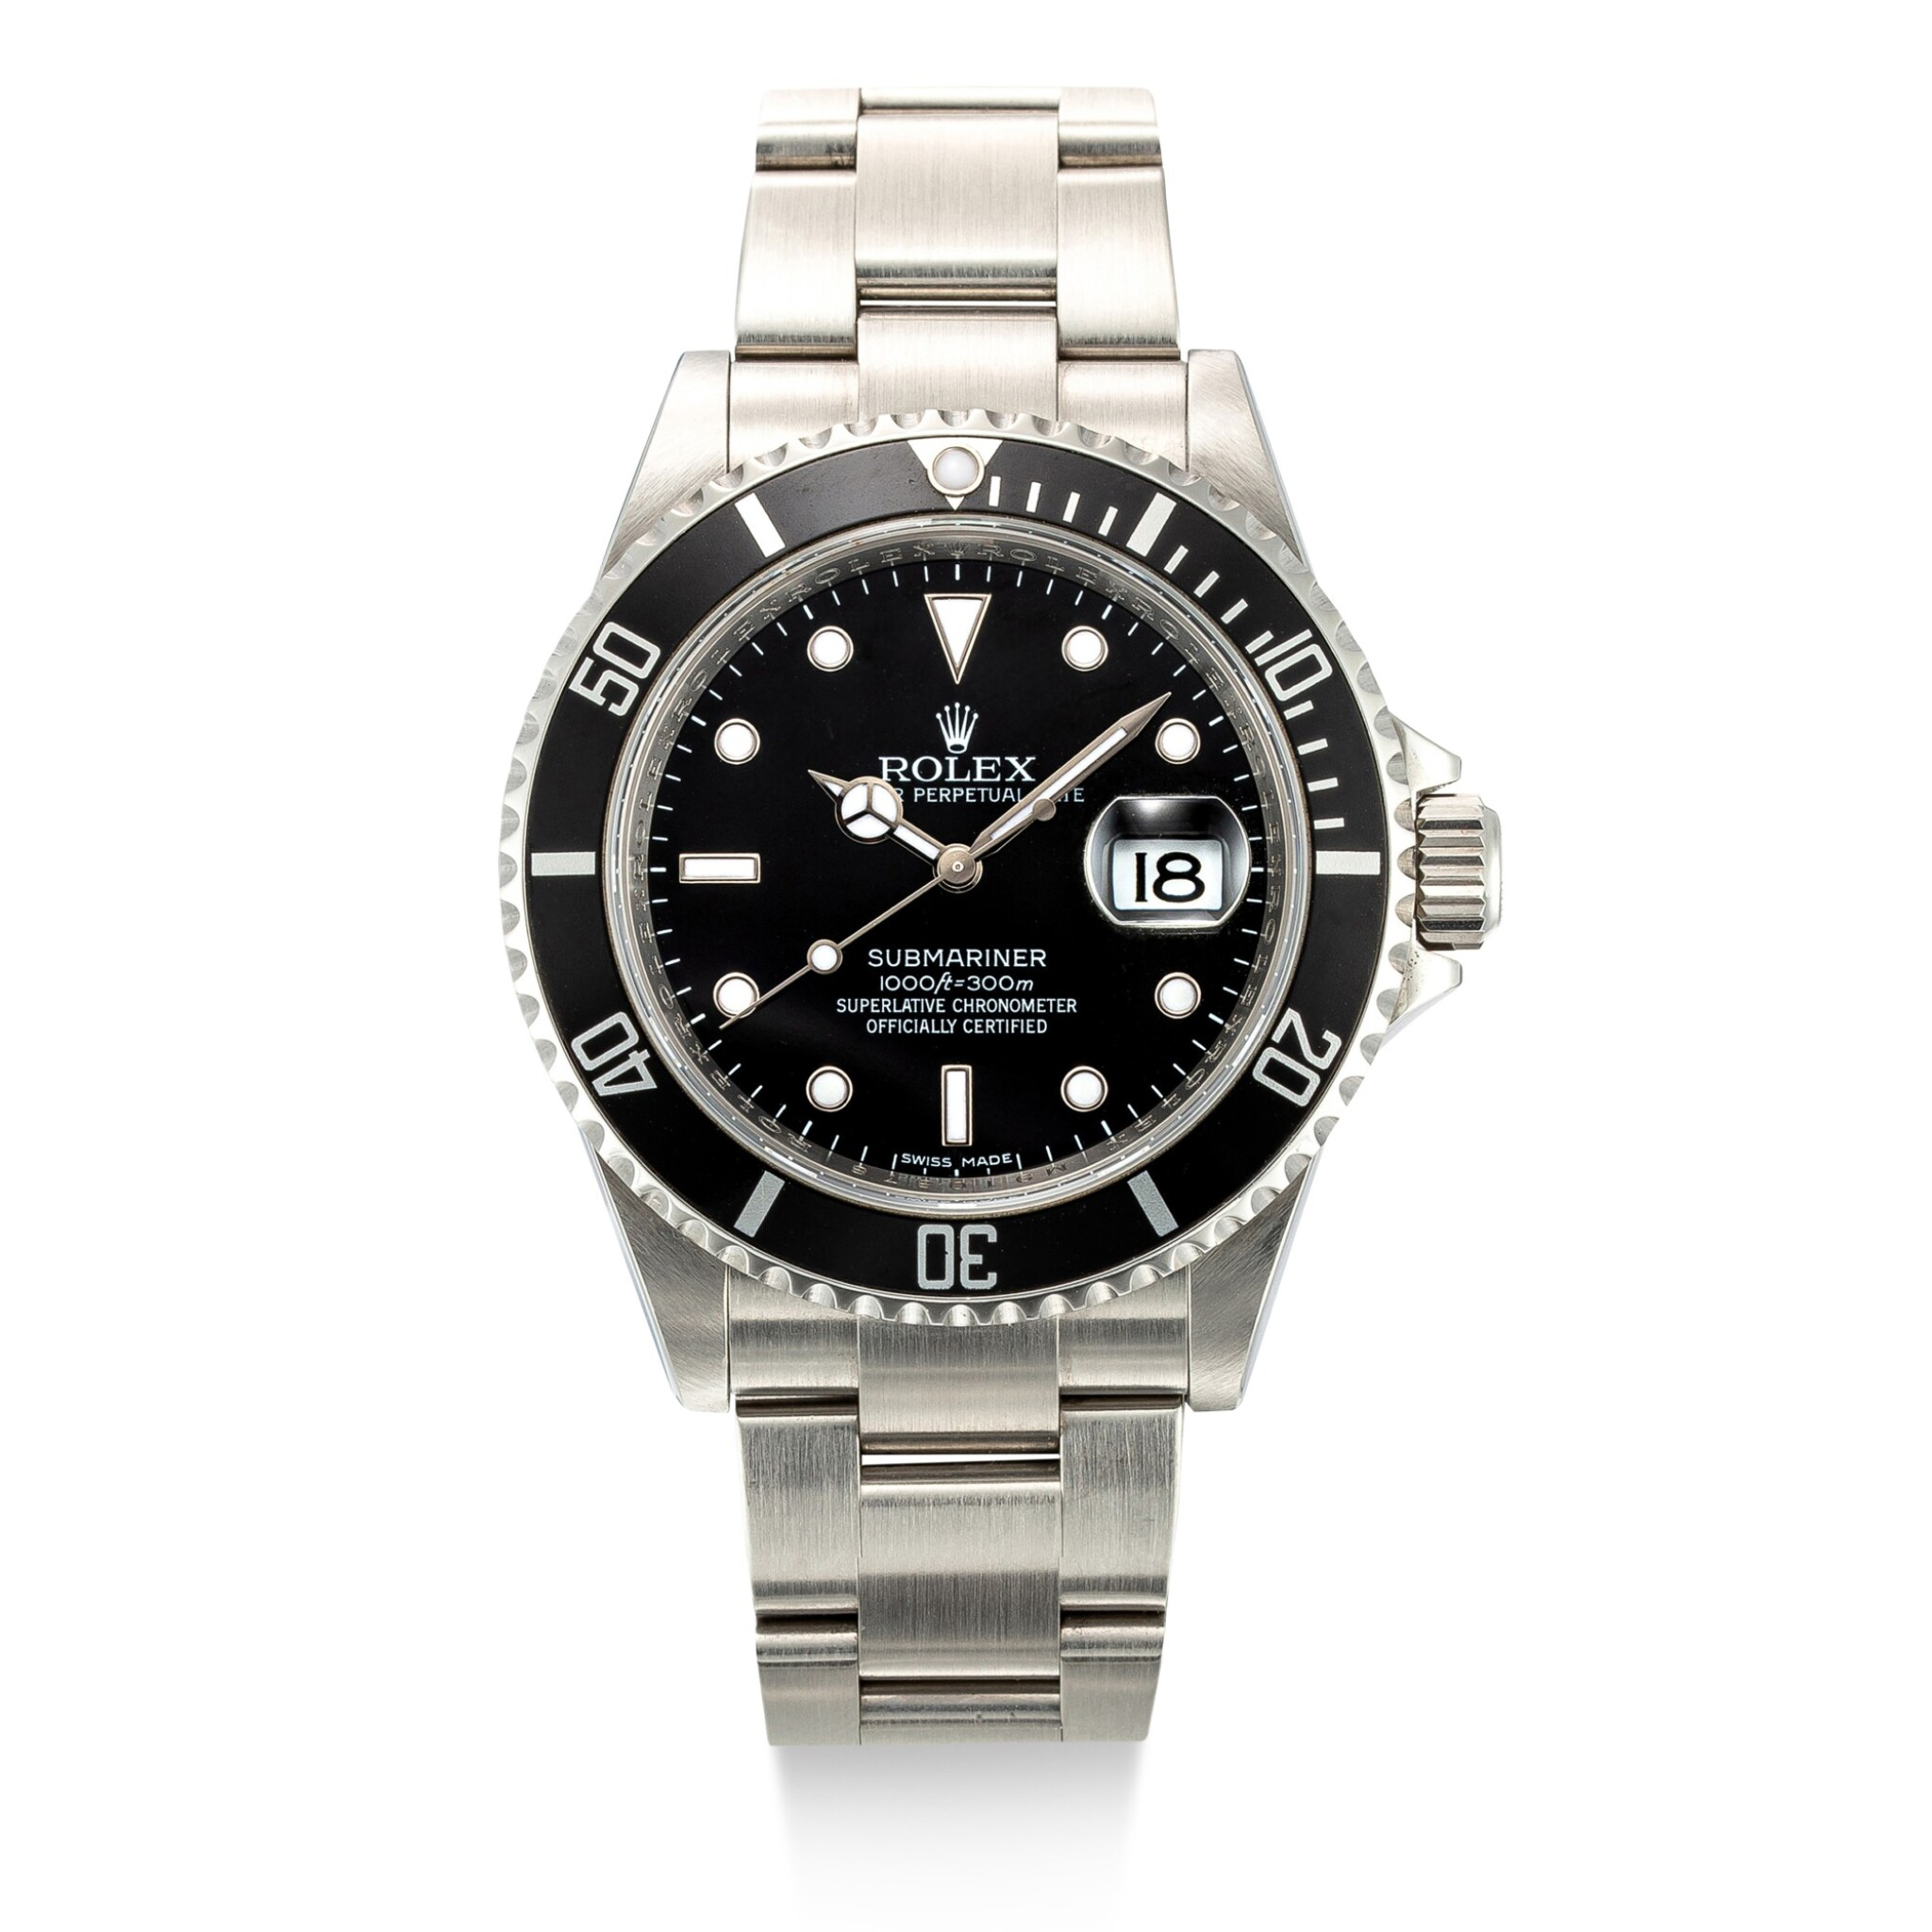 View 1 of Lot 8038. Rolex | Submariner, Reference 16610T, A stainless steel wristwatch with date and bracelet, Circa 2007 | 勞力士 | Submariner 型號16610T    精鋼鏈帶腕錶,備日期顯示,約2007年製.